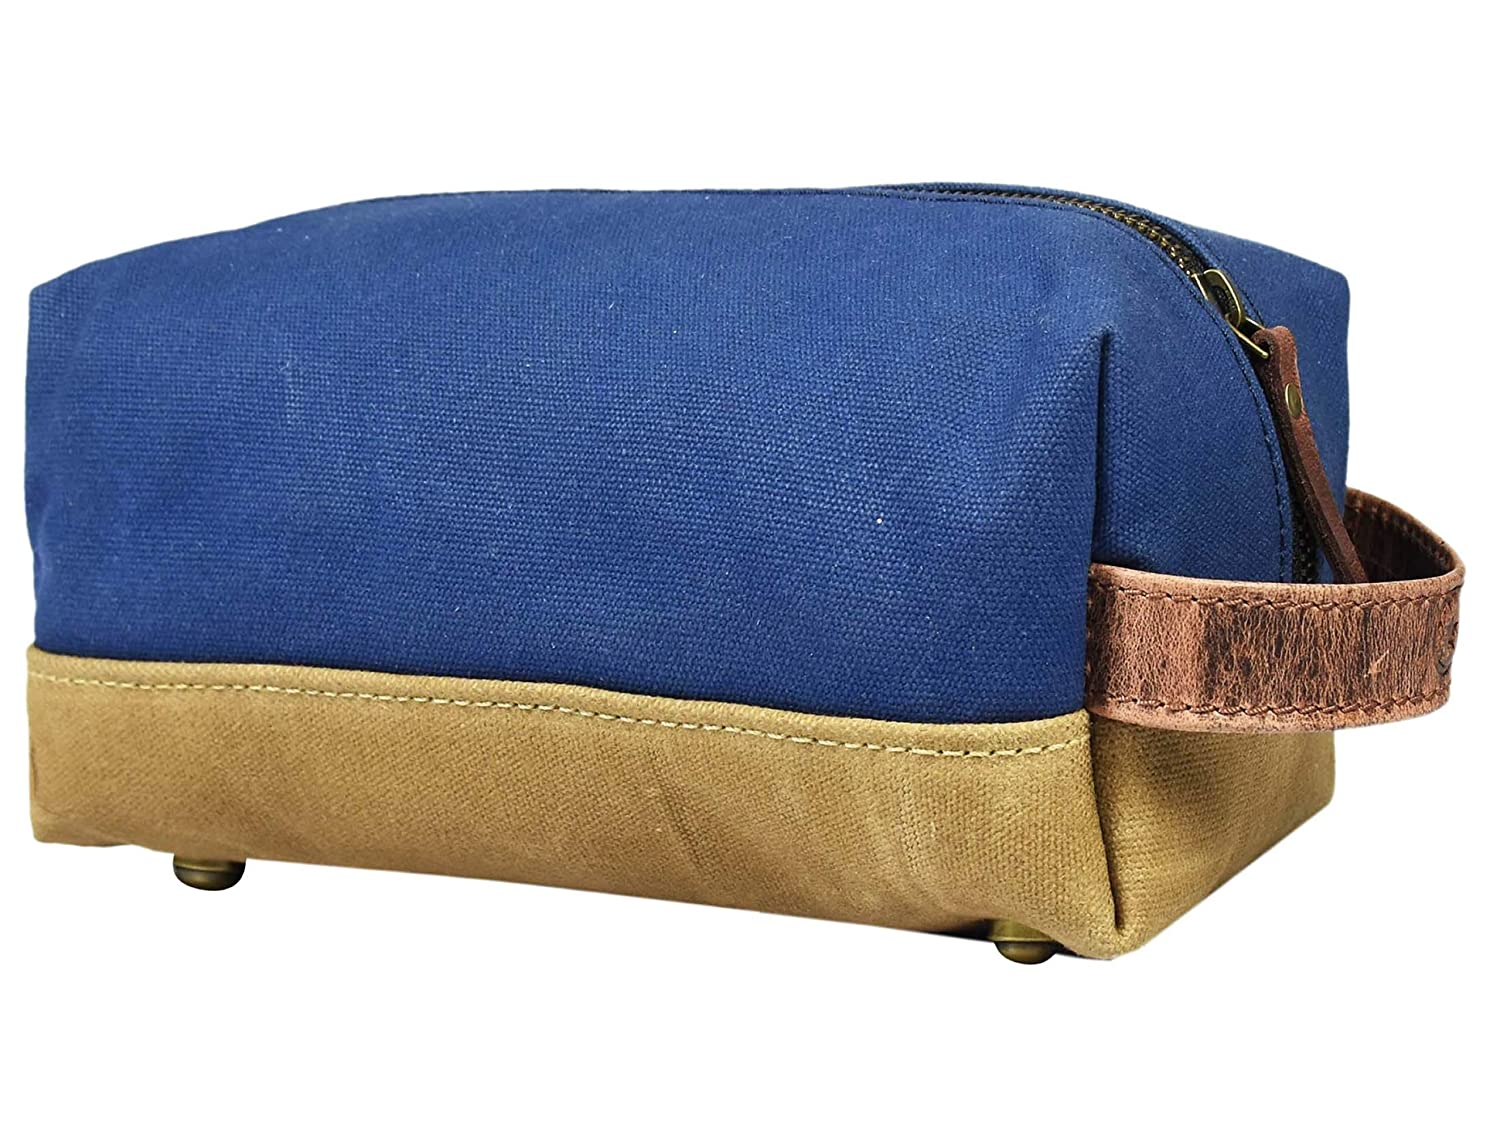 Canvas Leather Cosmetic Organizer Toiletry Bag Shaving Dopp Case by Aaron Leather Blue